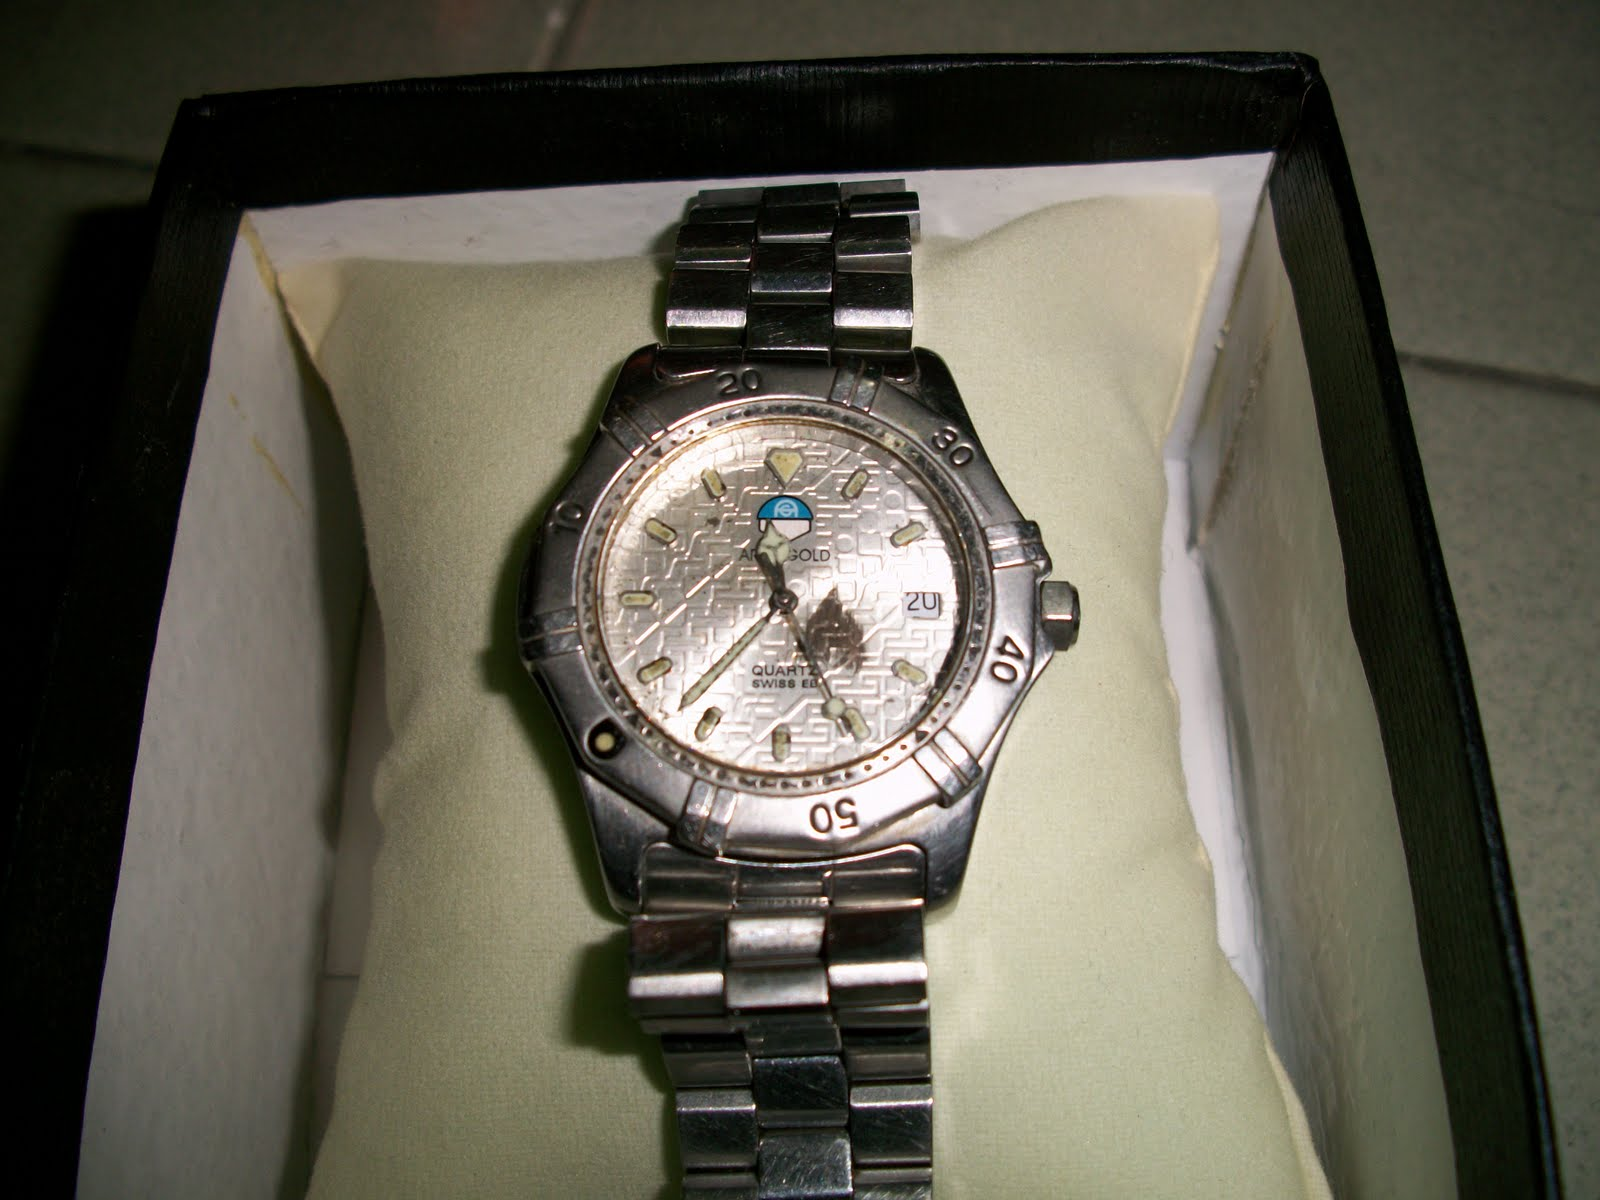 collectible items: Swiss Aries Gold Boy's size watch